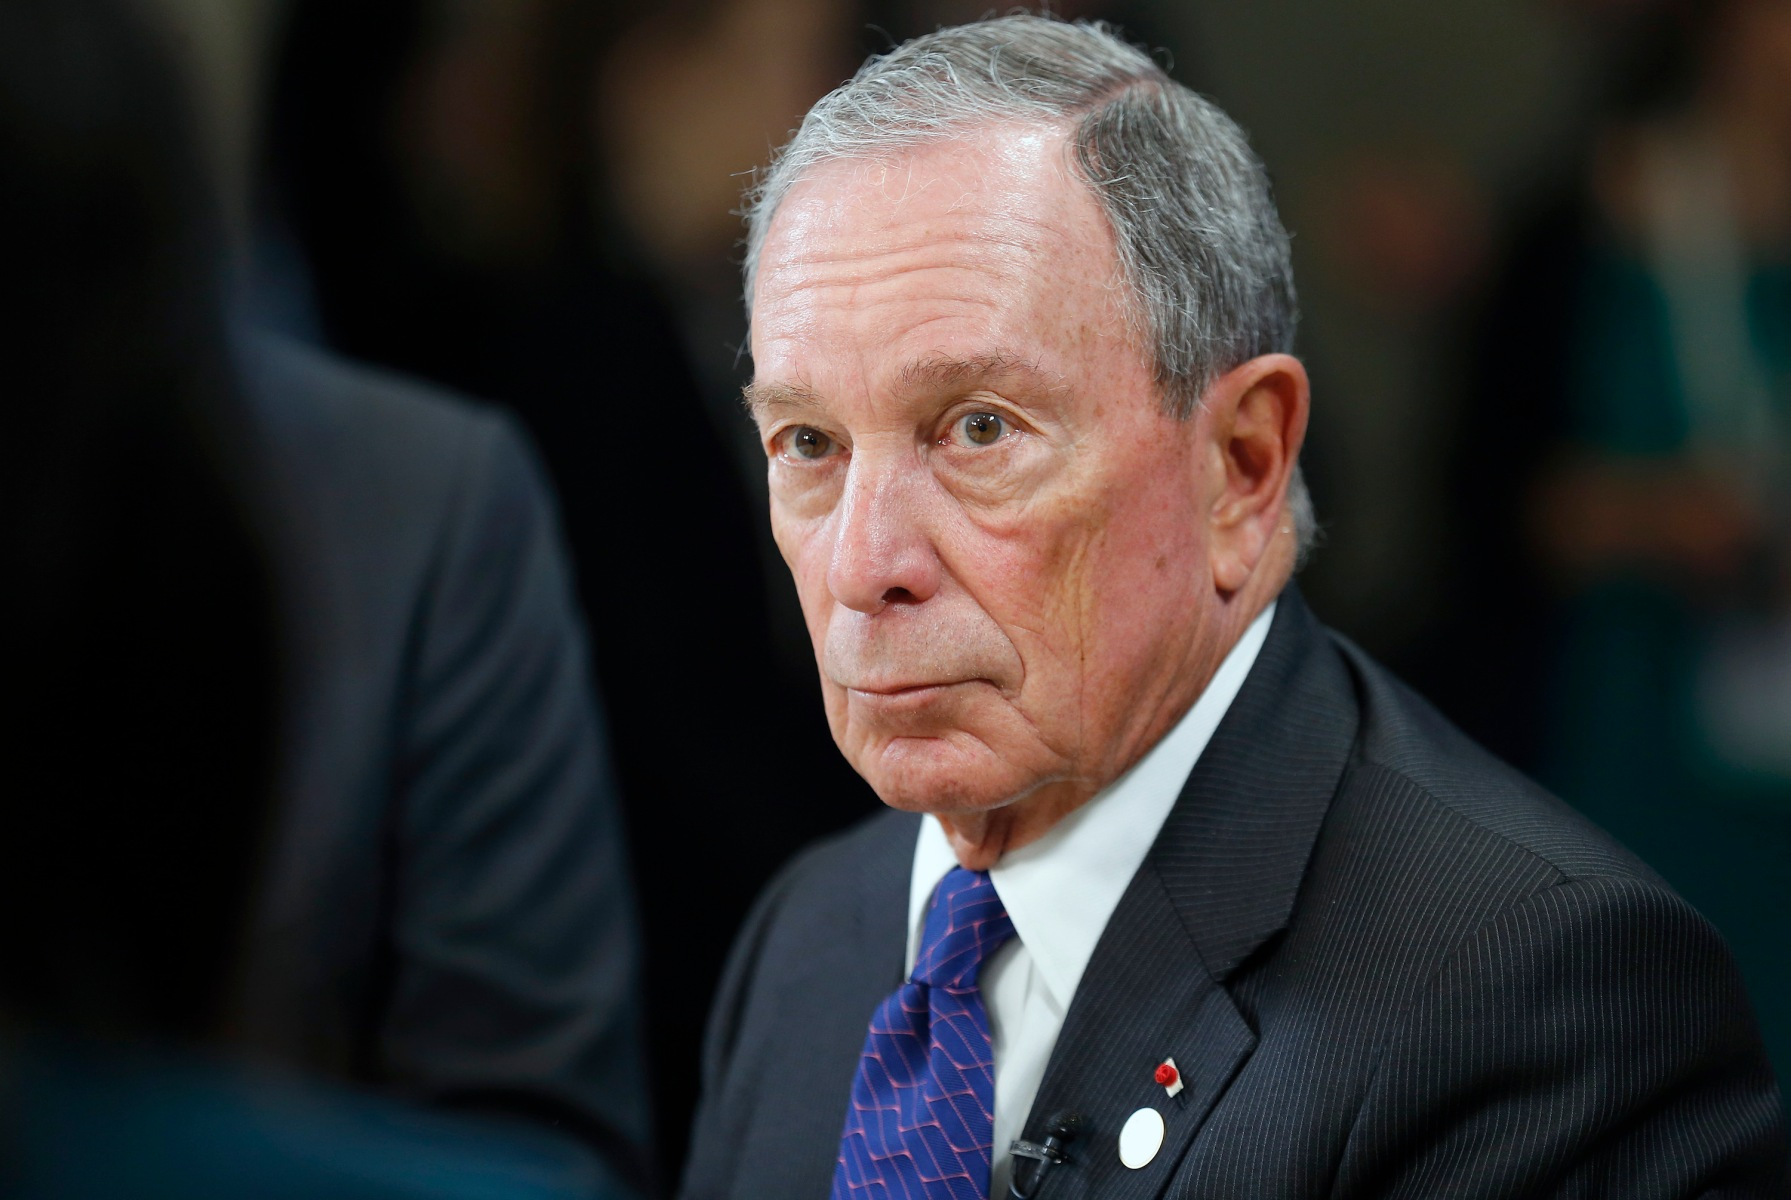 """Special envoy to the United Nations for climate change Michael Bloomberg speaks to a journalist during the One Planet Summit at the Seine Musicale on the Ile Sequin on December 12 in Boulogne-Billancourt, France. Around 50 world leaders and environmental activists are taking part in a major climate summit in Paris called """"One Planet Summit"""" two years after Paris Agreement Cop 21.  (Photo by Chesnot/Getty Images)"""